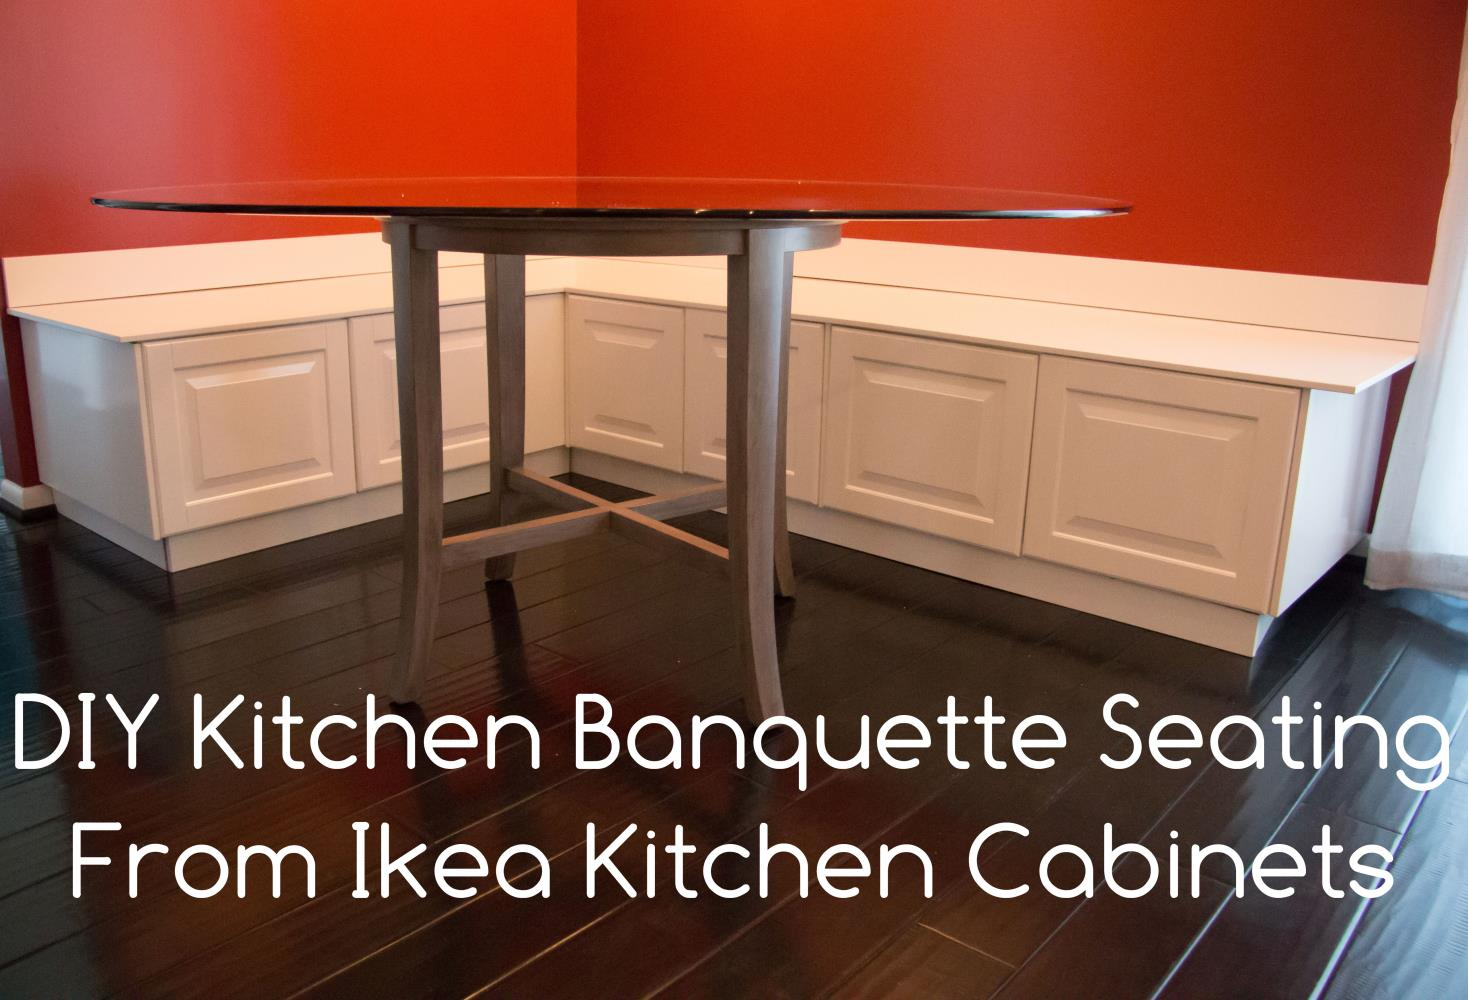 ikea diy kitchen bench or banquette seating. Interior Design Ideas. Home Design Ideas